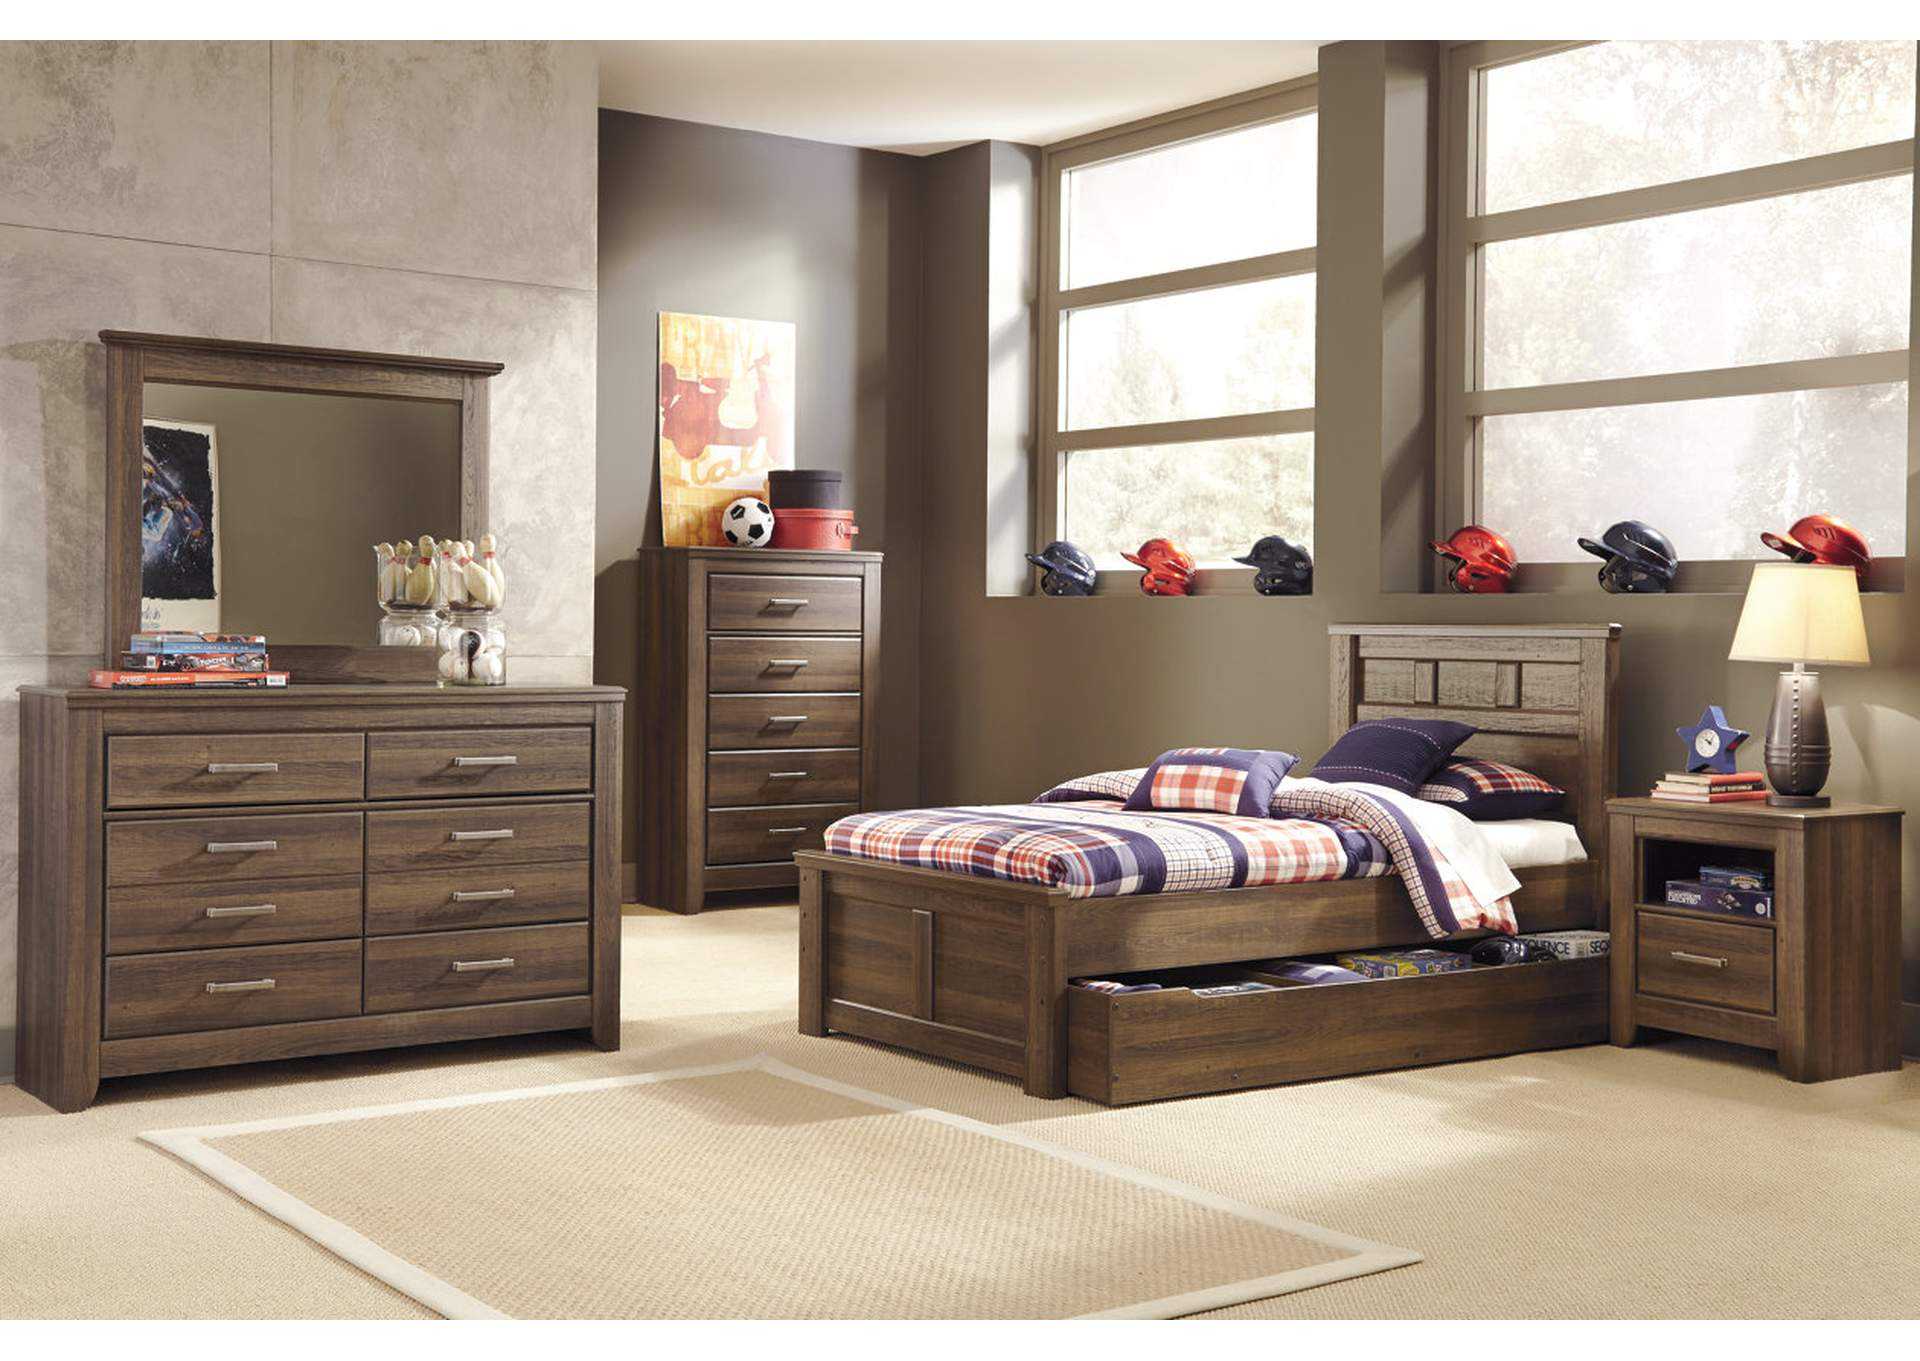 Juararo Twin Panel Storage Bed w/Dresser, Mirror, Chest & 1 Drawer Nightstand,Signature Design By Ashley